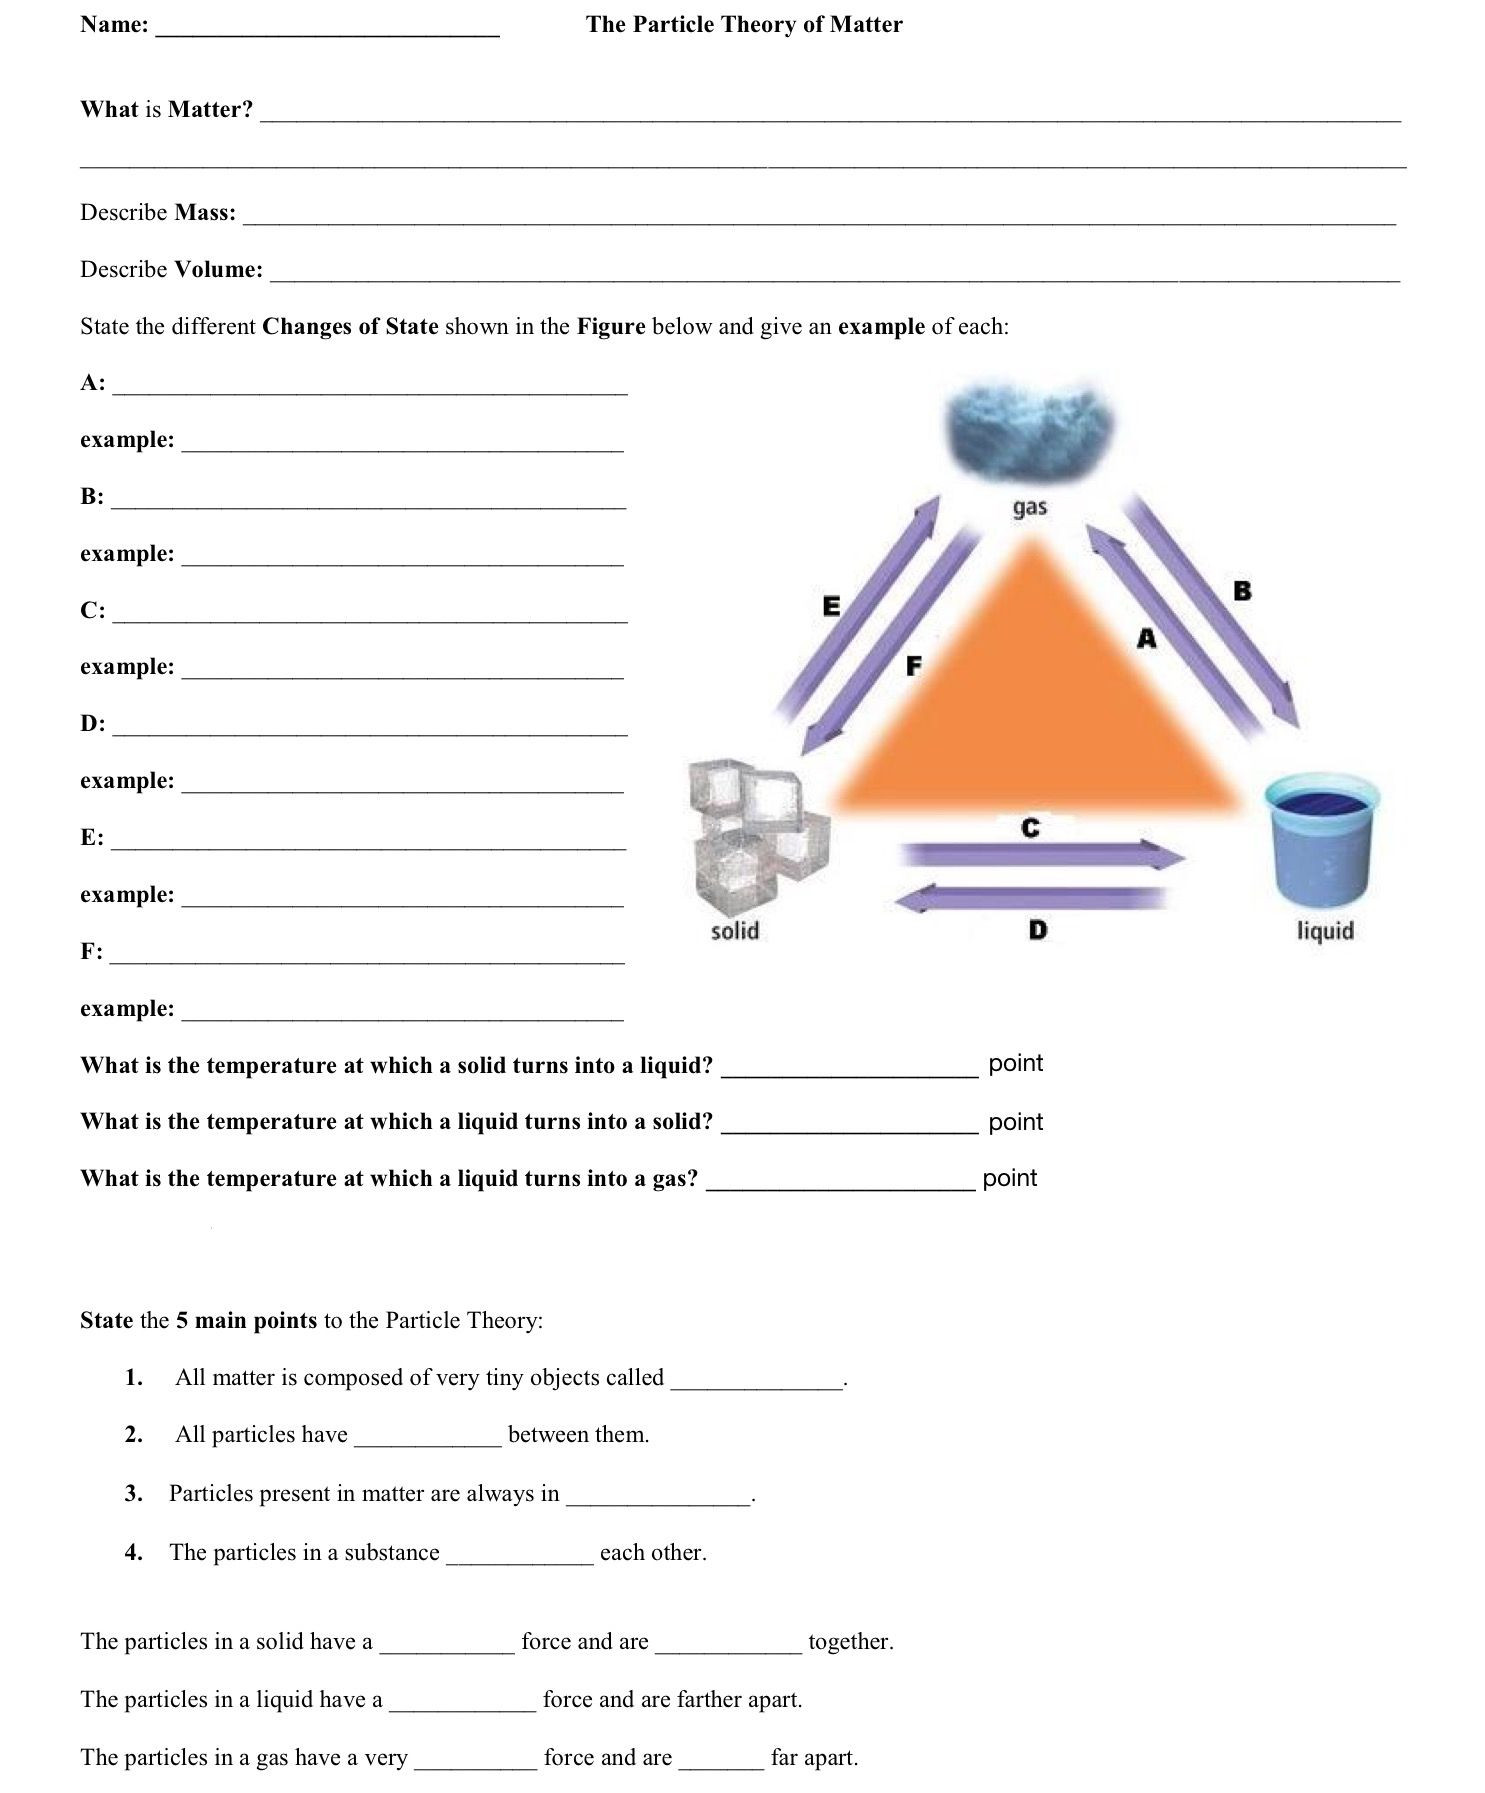 Bill Nye Chemical Reactions Worksheet the Particle theory Of Matter Worksheet Monday April 1